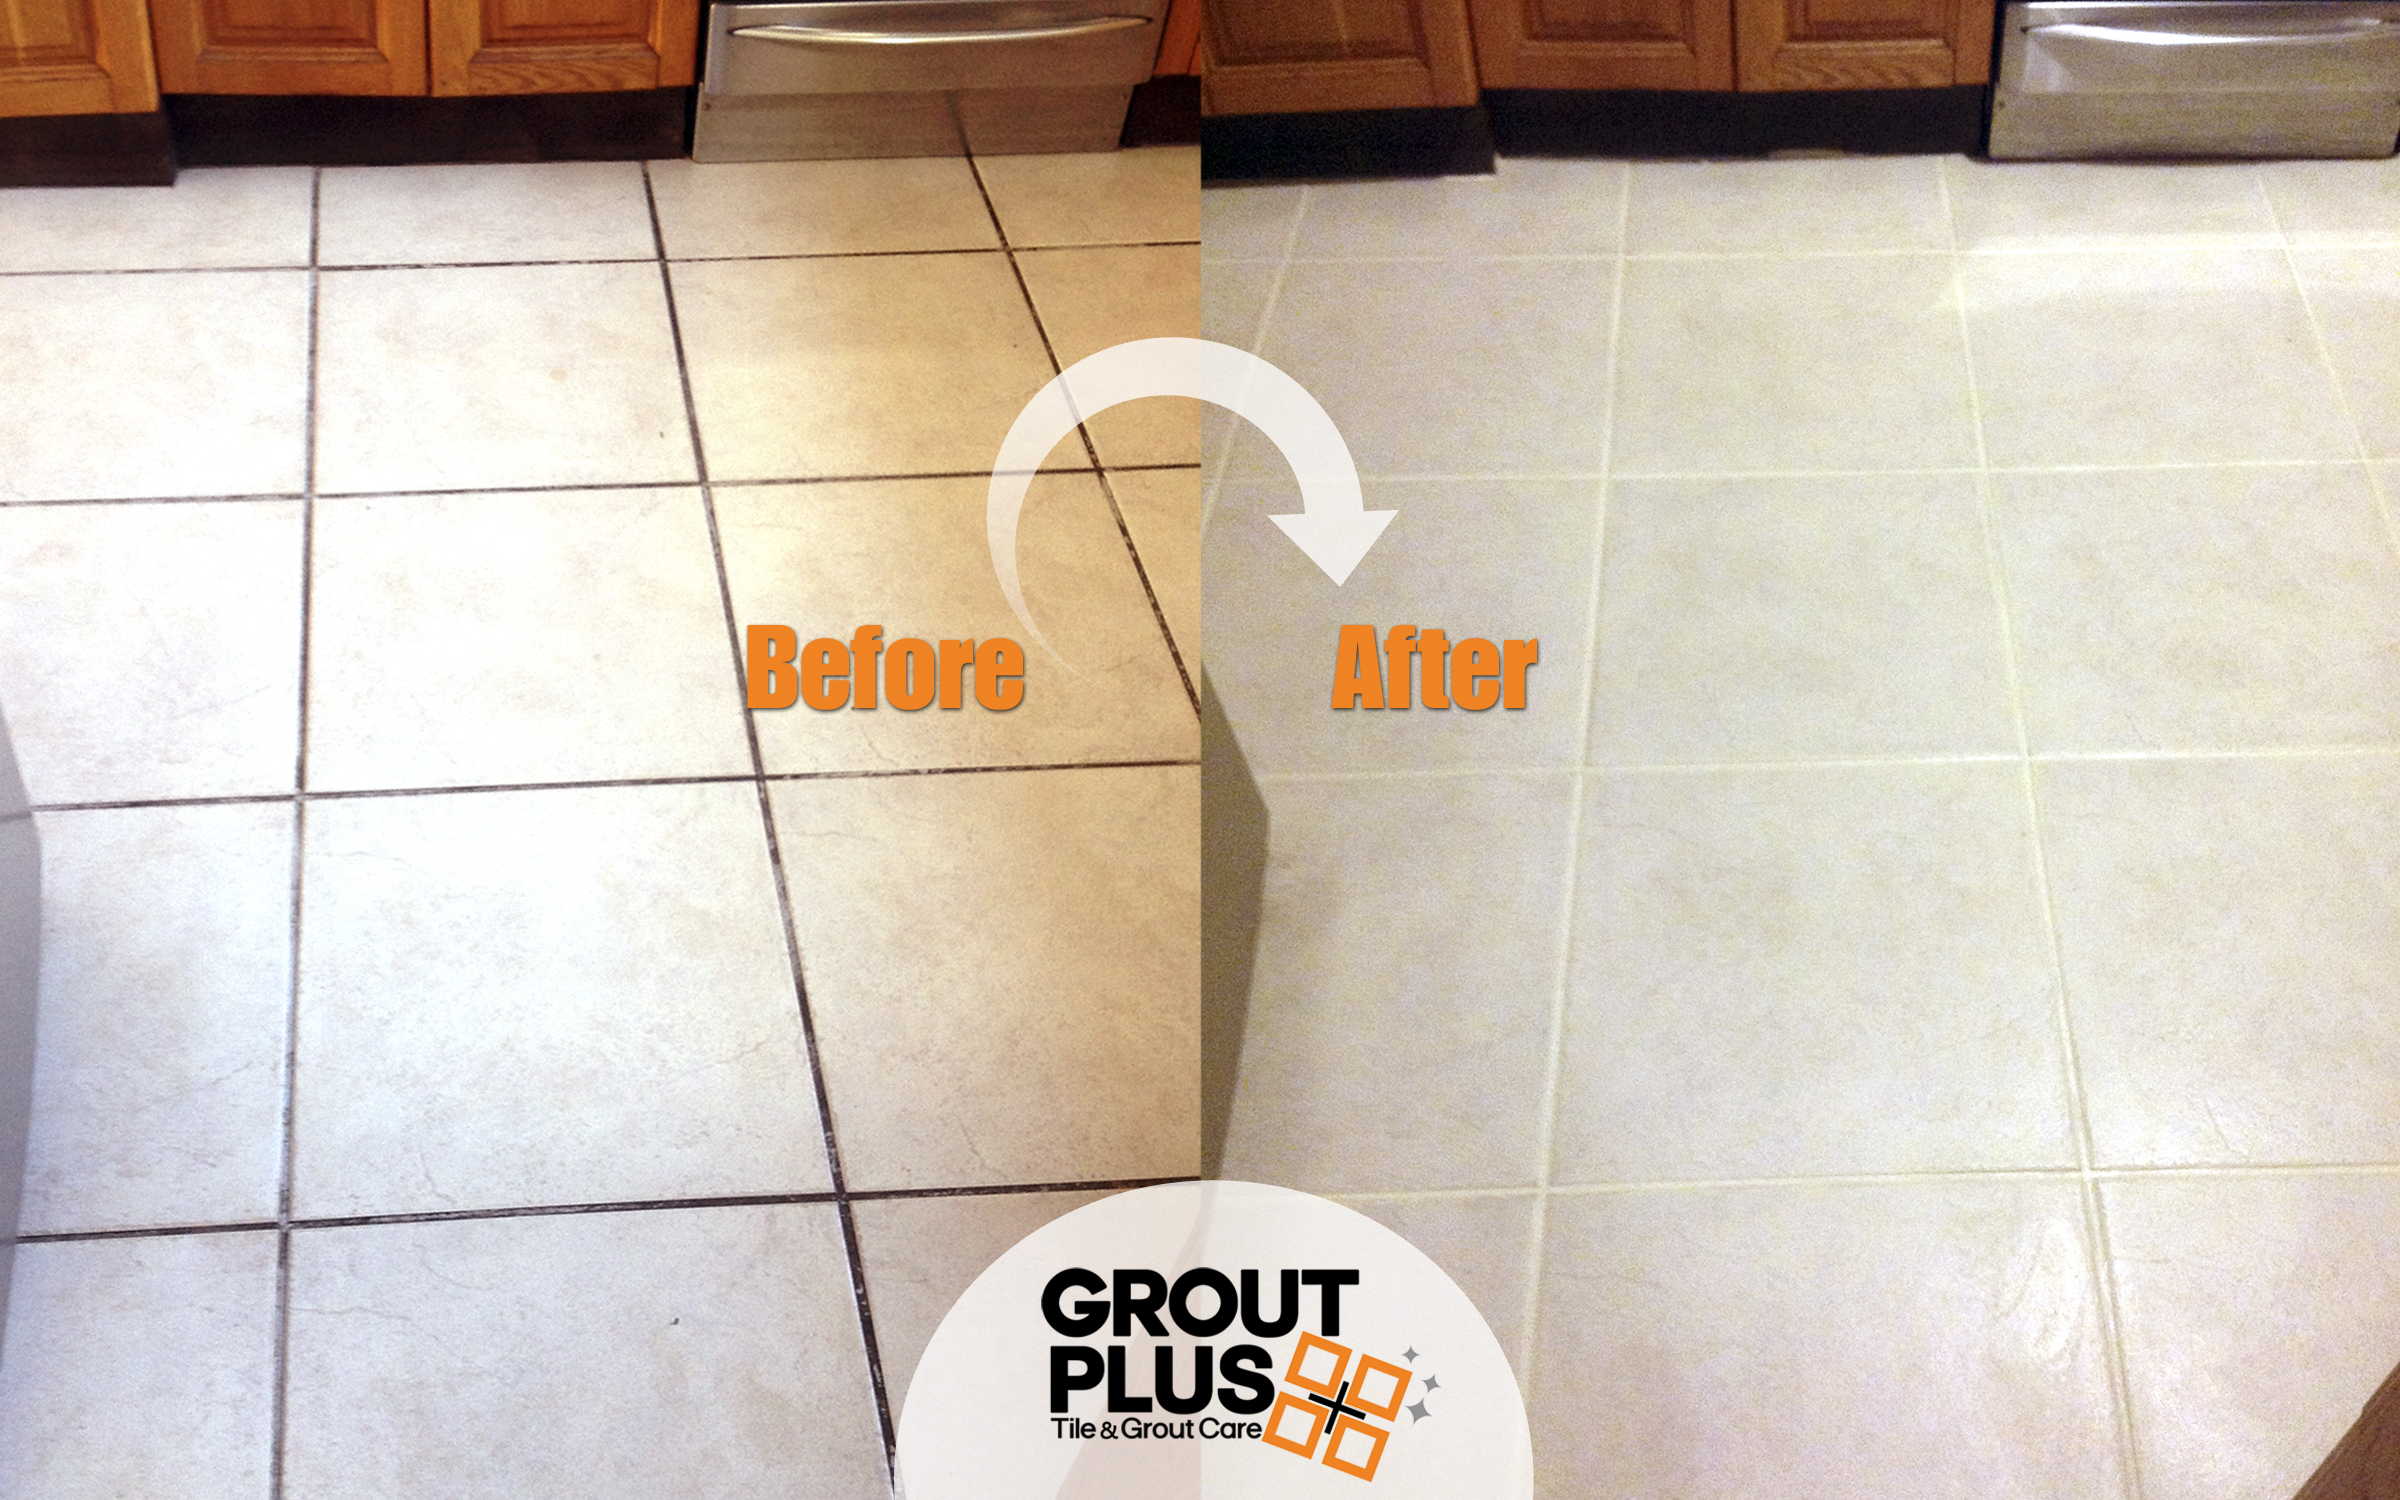 Grout Plus Before After Tile Grout9.jpg